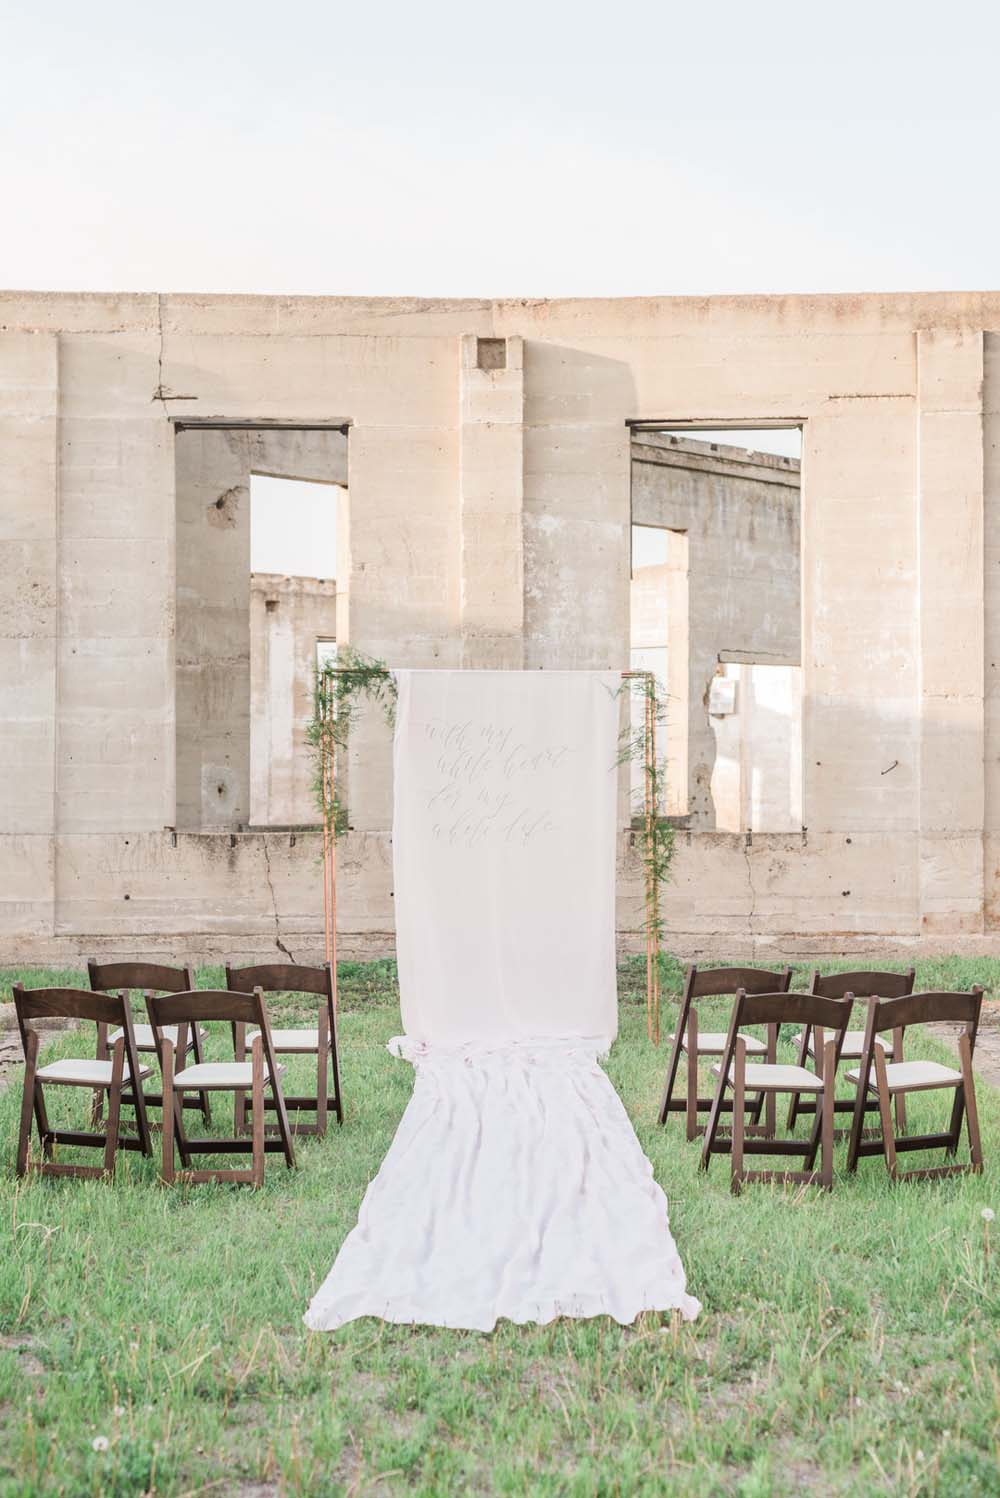 A Romantic Themed Shoot Inspired by Ruins - Aisle